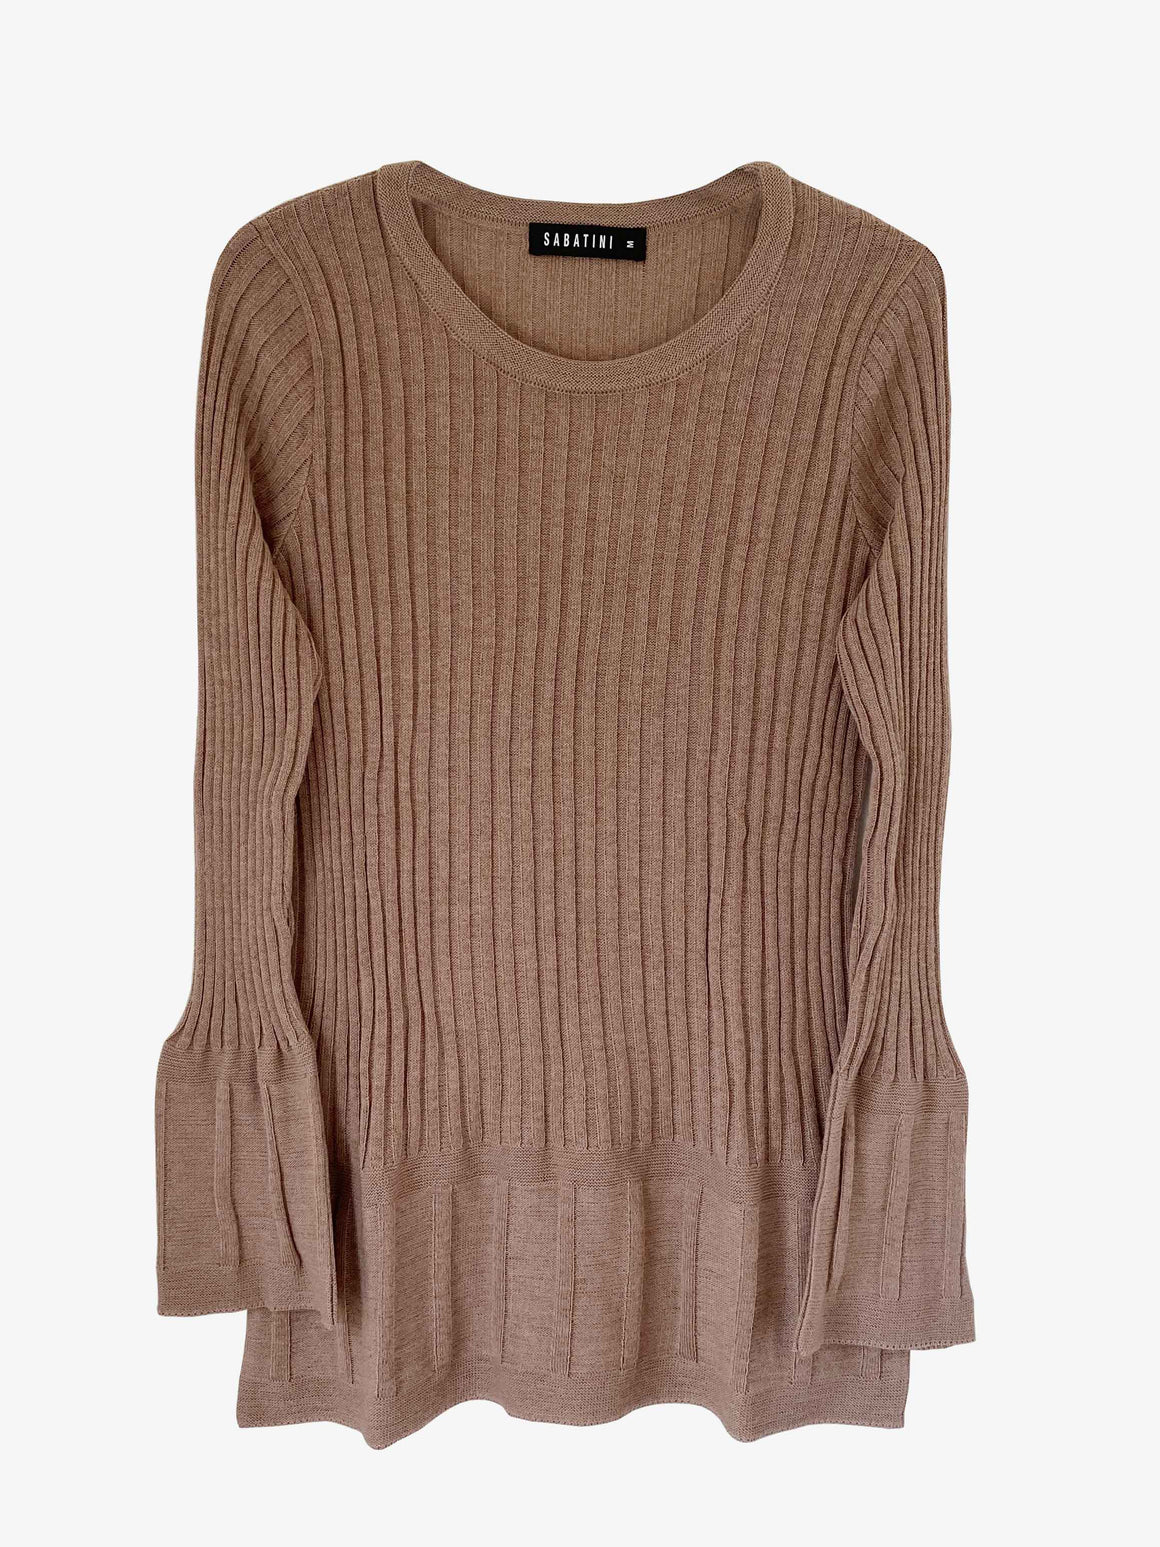 Sabatini Plated Twotone Knit Top - Nougat